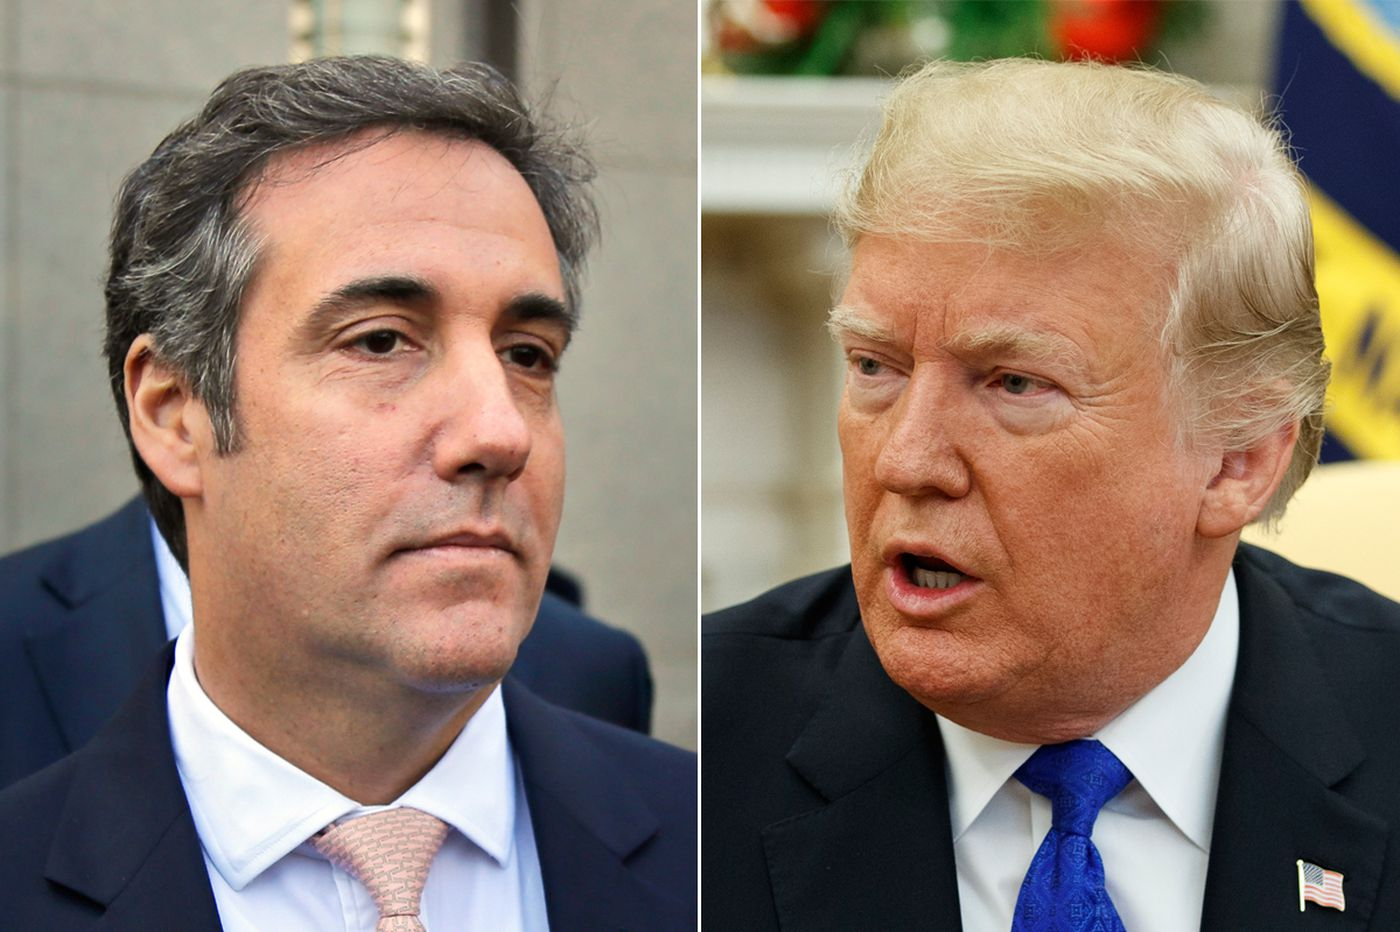 BuzzFeed report involving Trump, Michael Cohen called 'not accurate' by Mueller's office